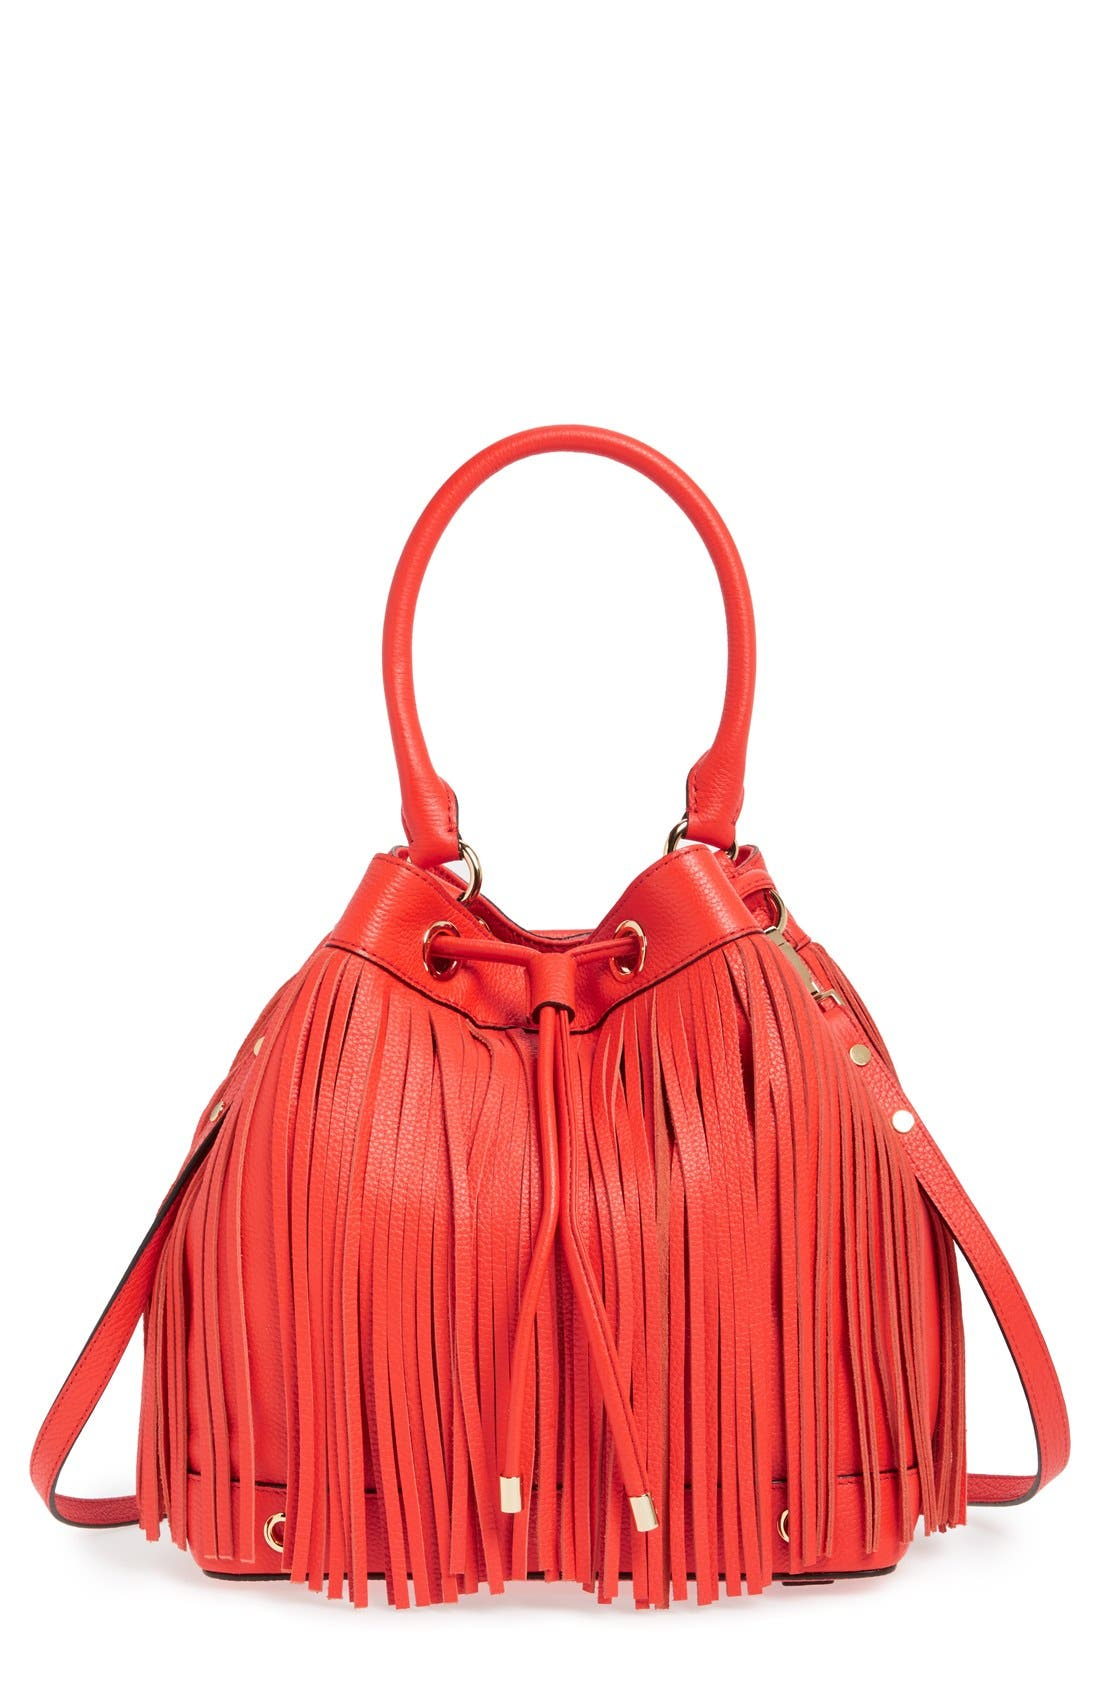 'Essex' Fringed Leather Bucket Bag,                             Main thumbnail 1, color,                             Vermilion Red